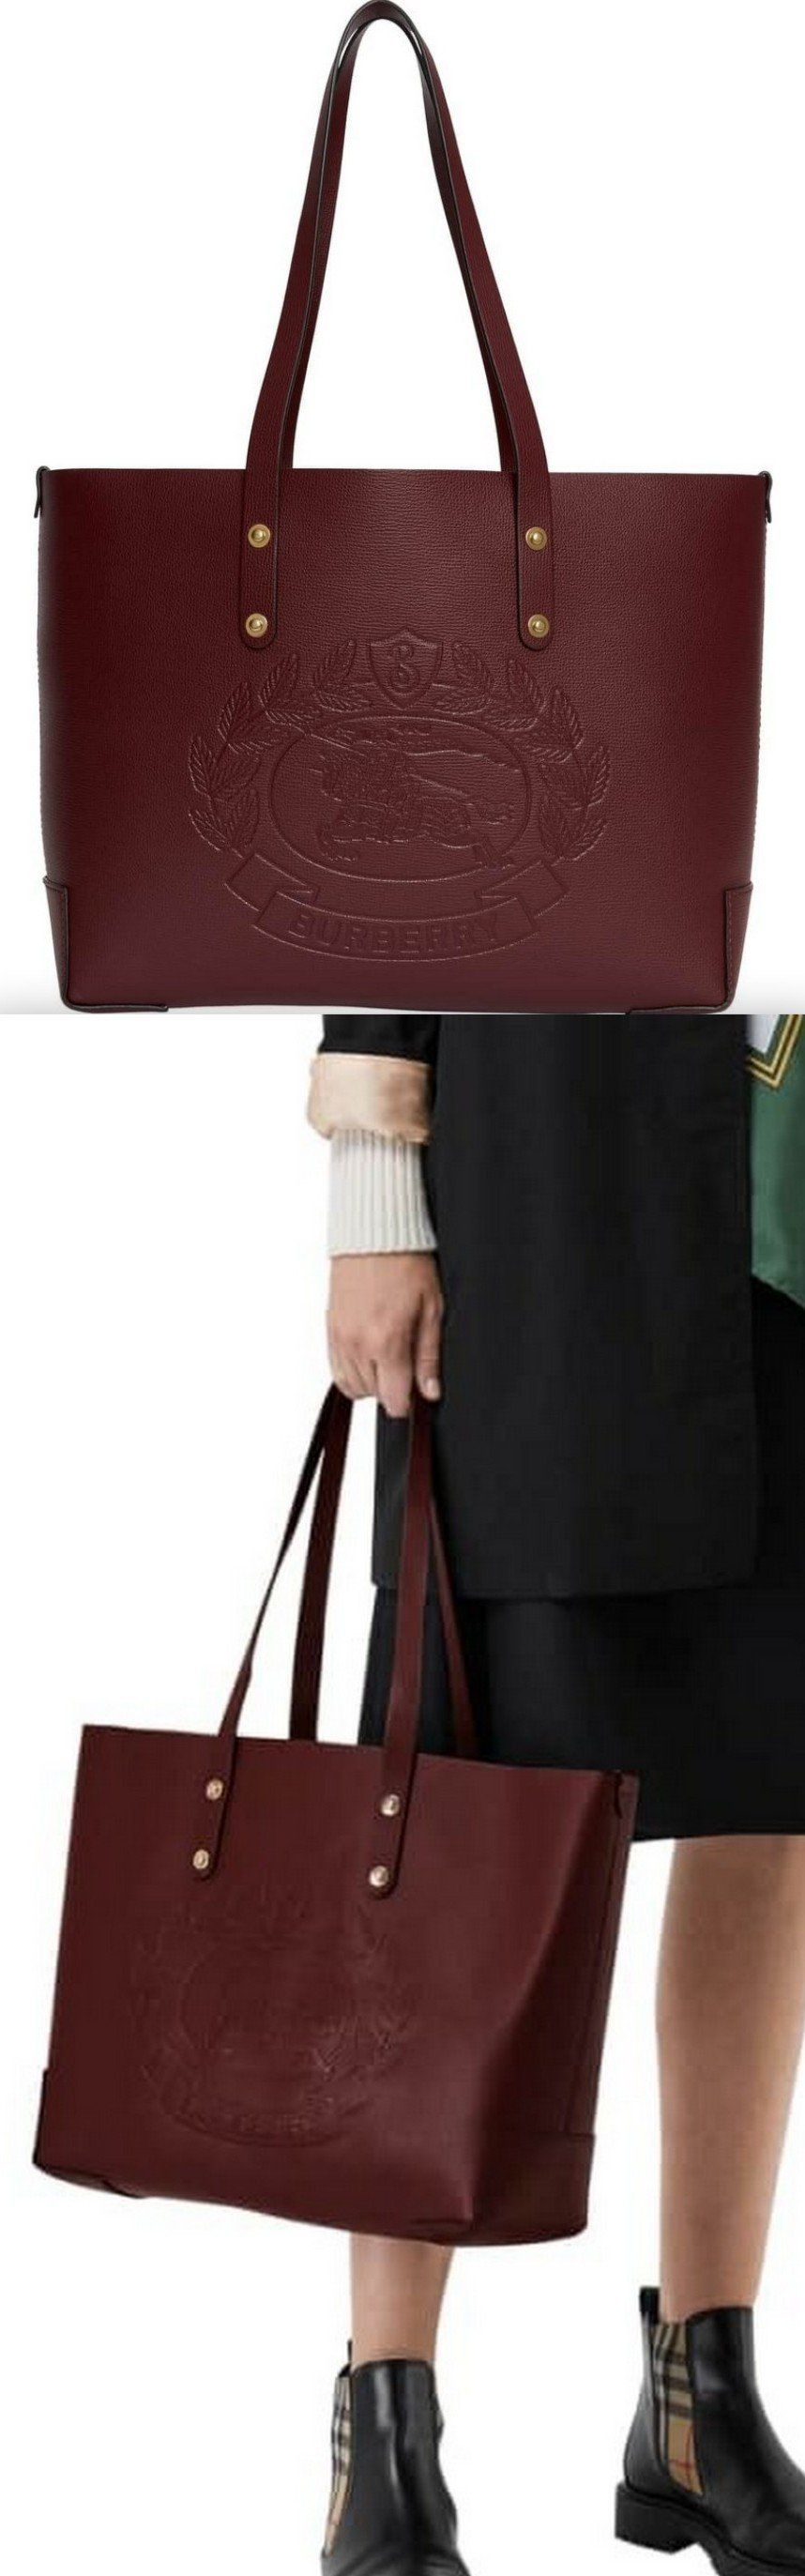 7fa494216f Embossed Crest Small Leather Tote